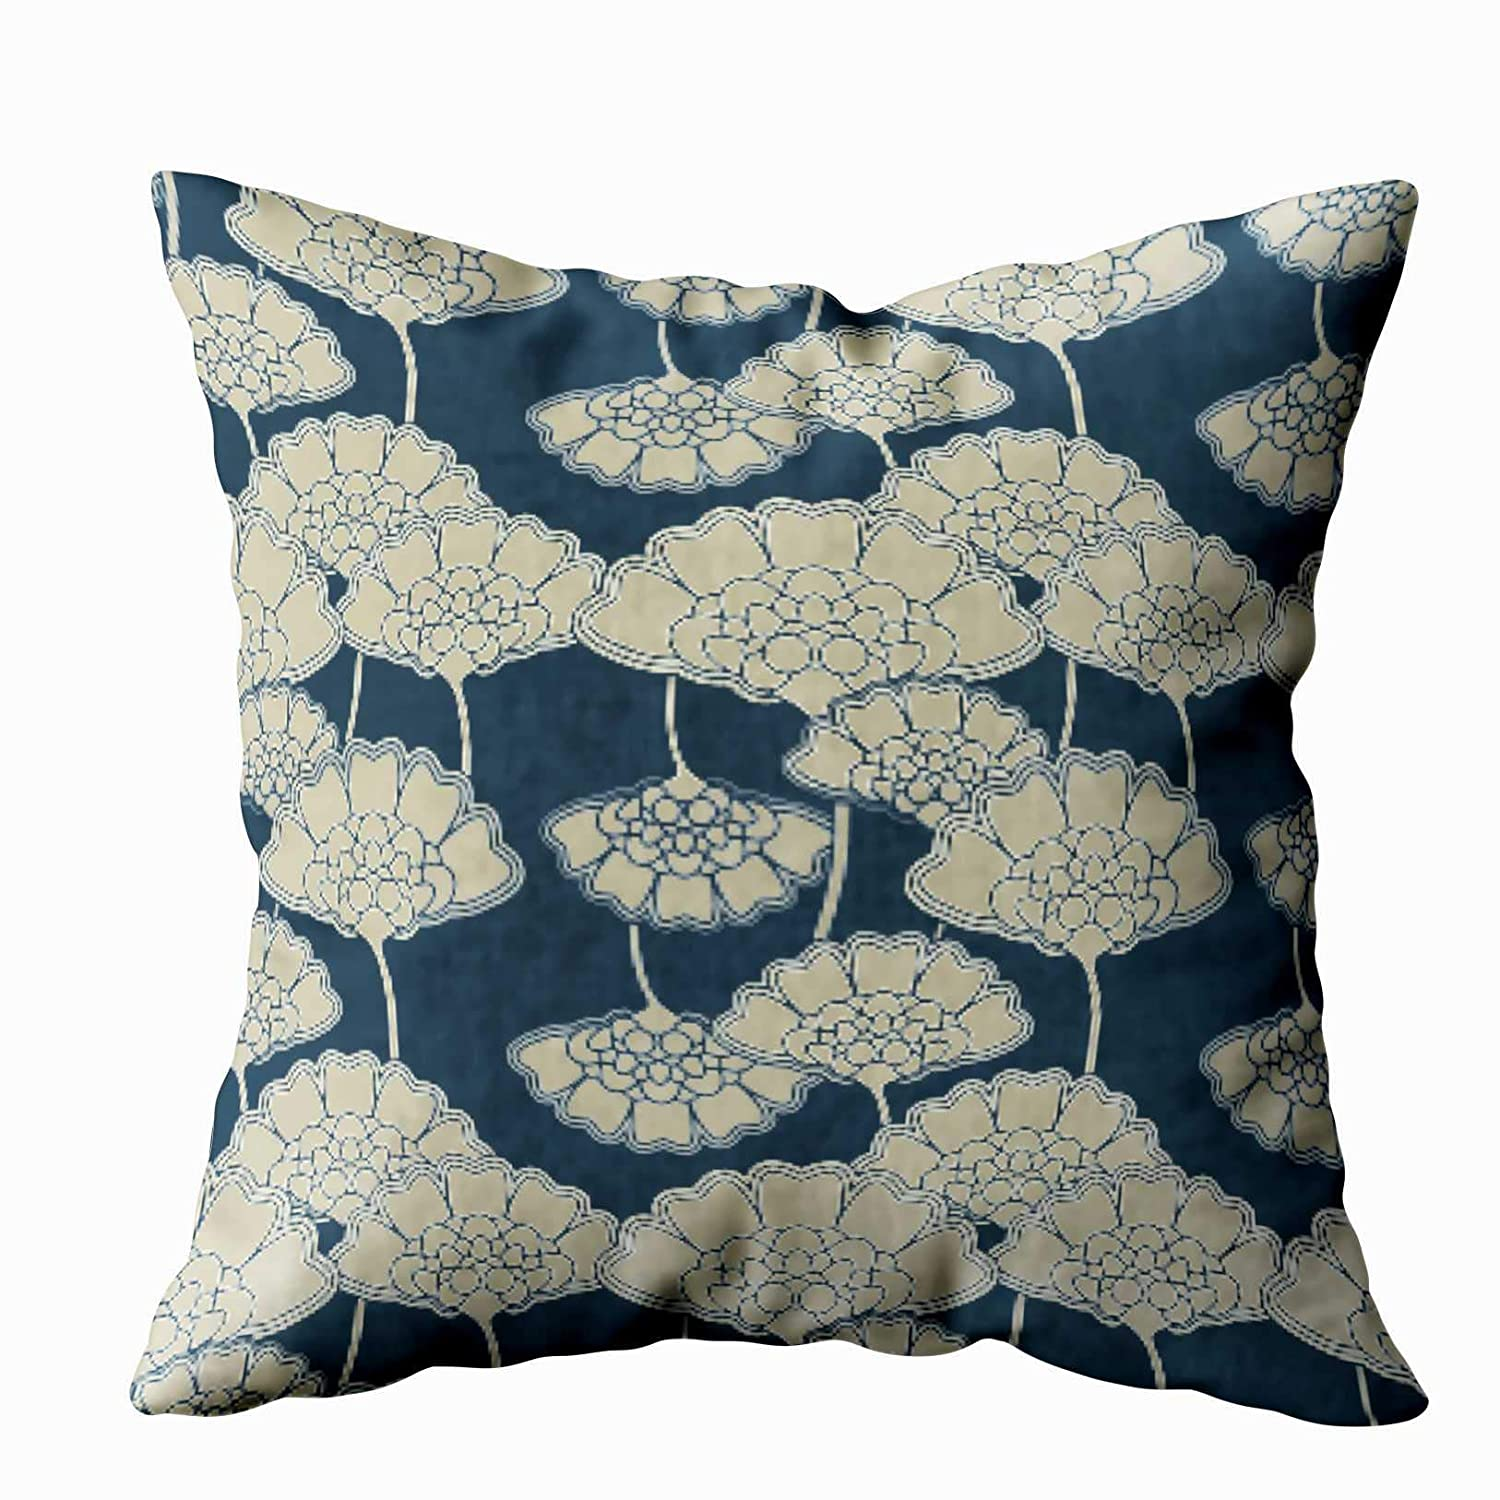 Shorping Sofa Pillow Cases, Zippered Covers Pillowcases 16X16Inch Throw Pillow Covers Japan Blue Floral Flowers Outdoor Pillow for Home Sofa Bedding